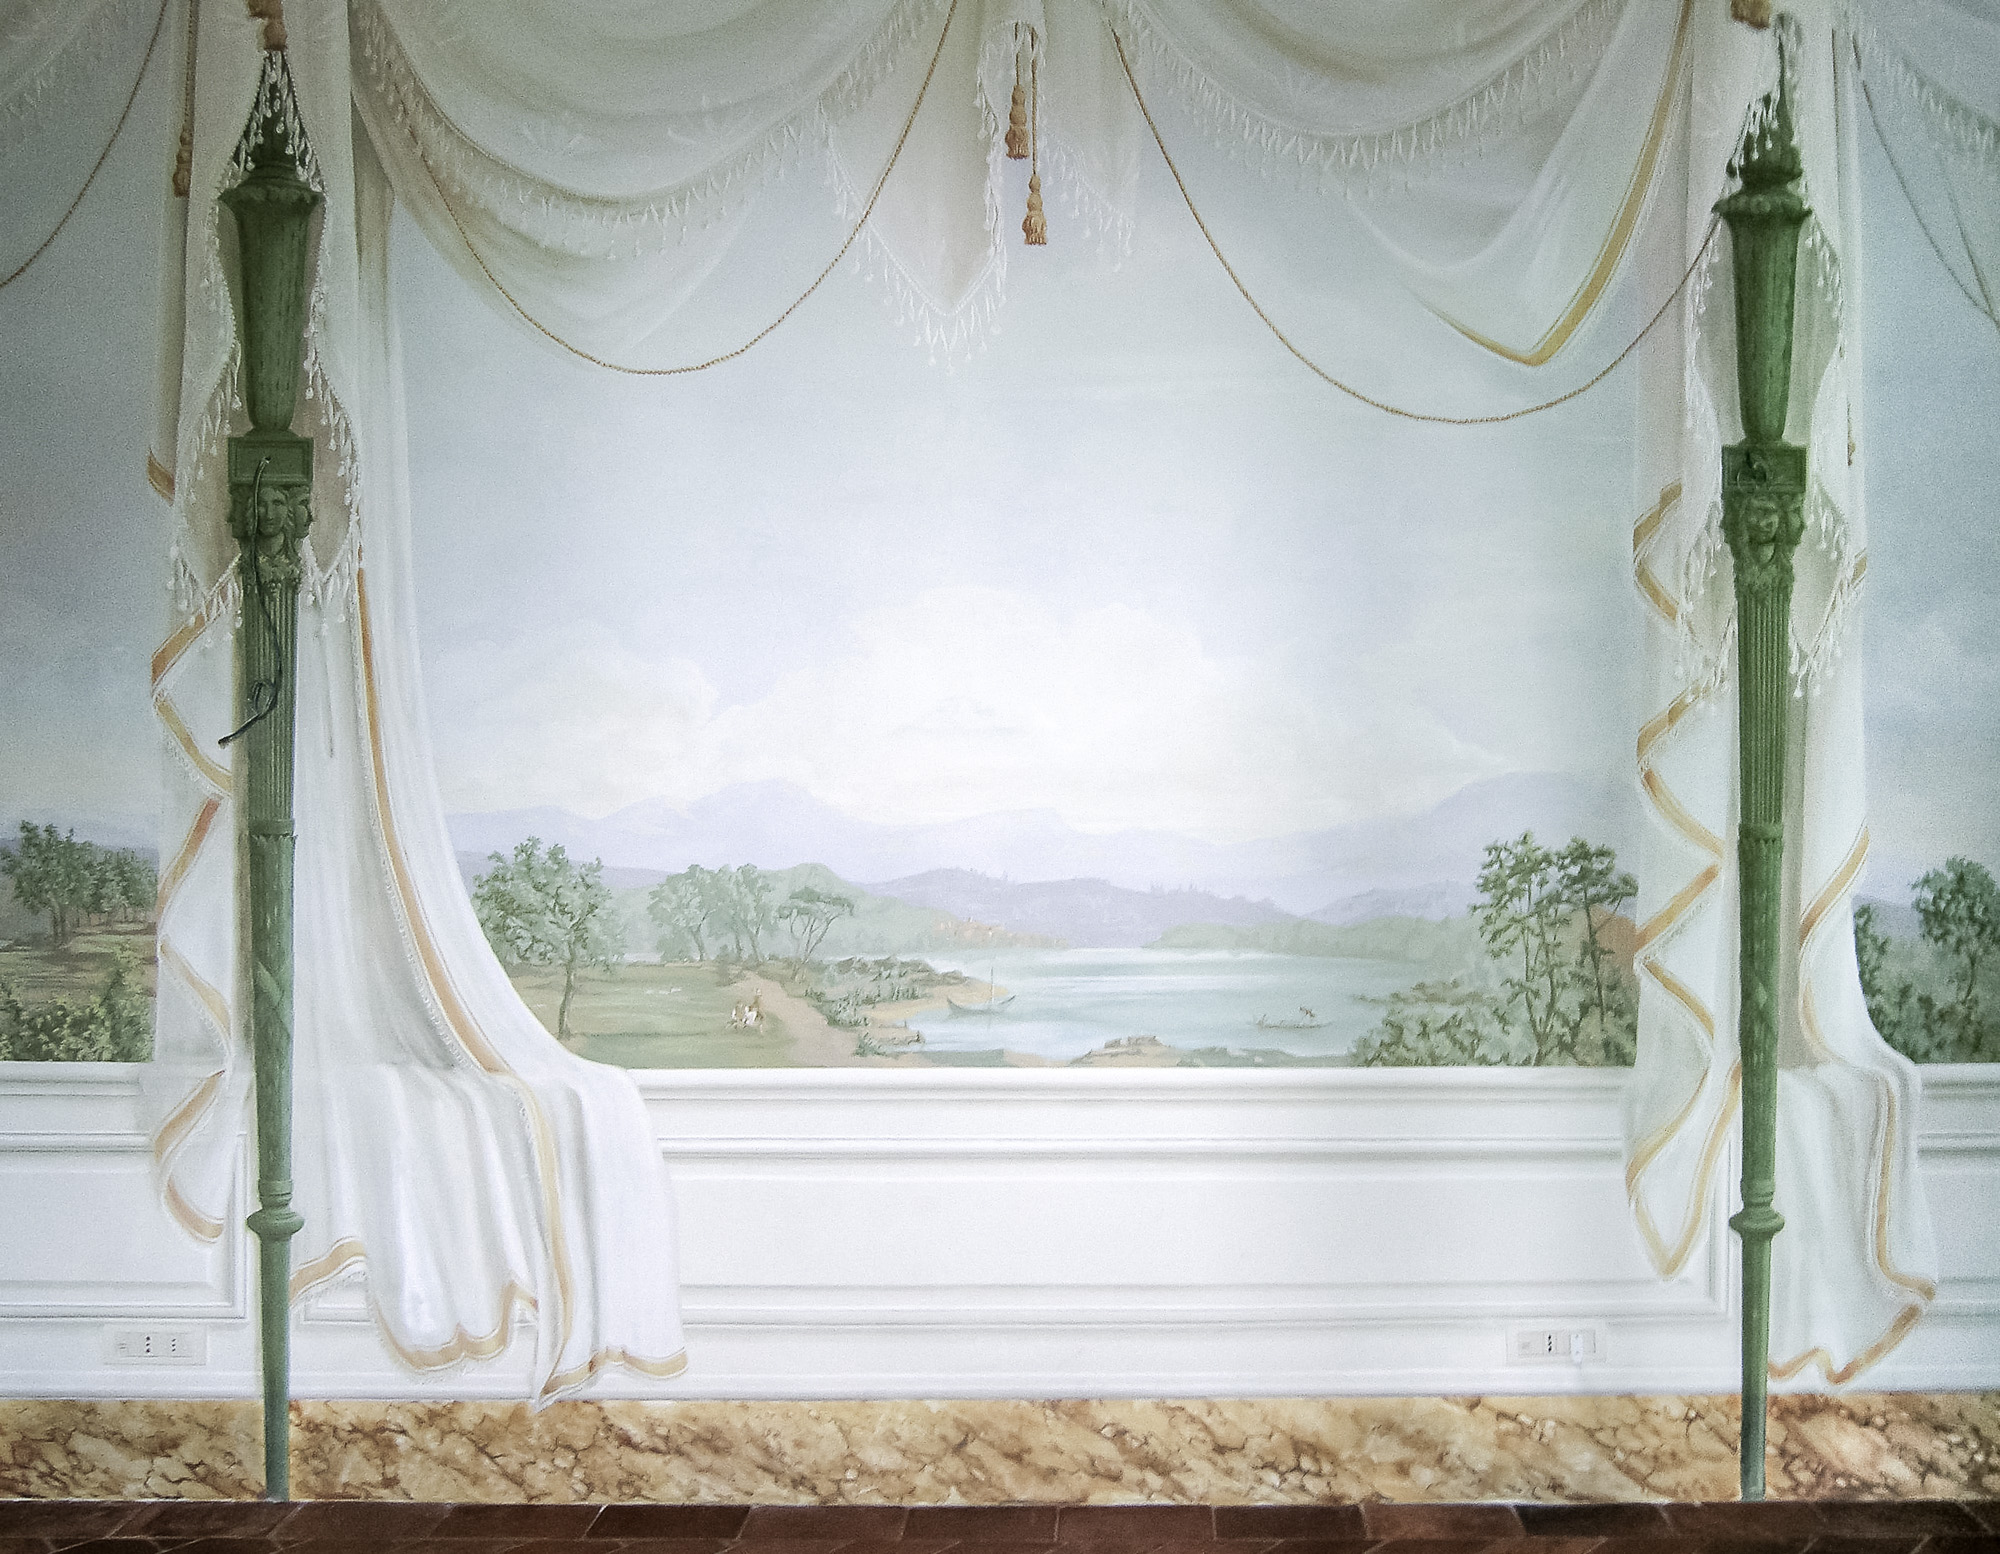 Tented room mural - Alexander Hamilton - Decorative Painter - London